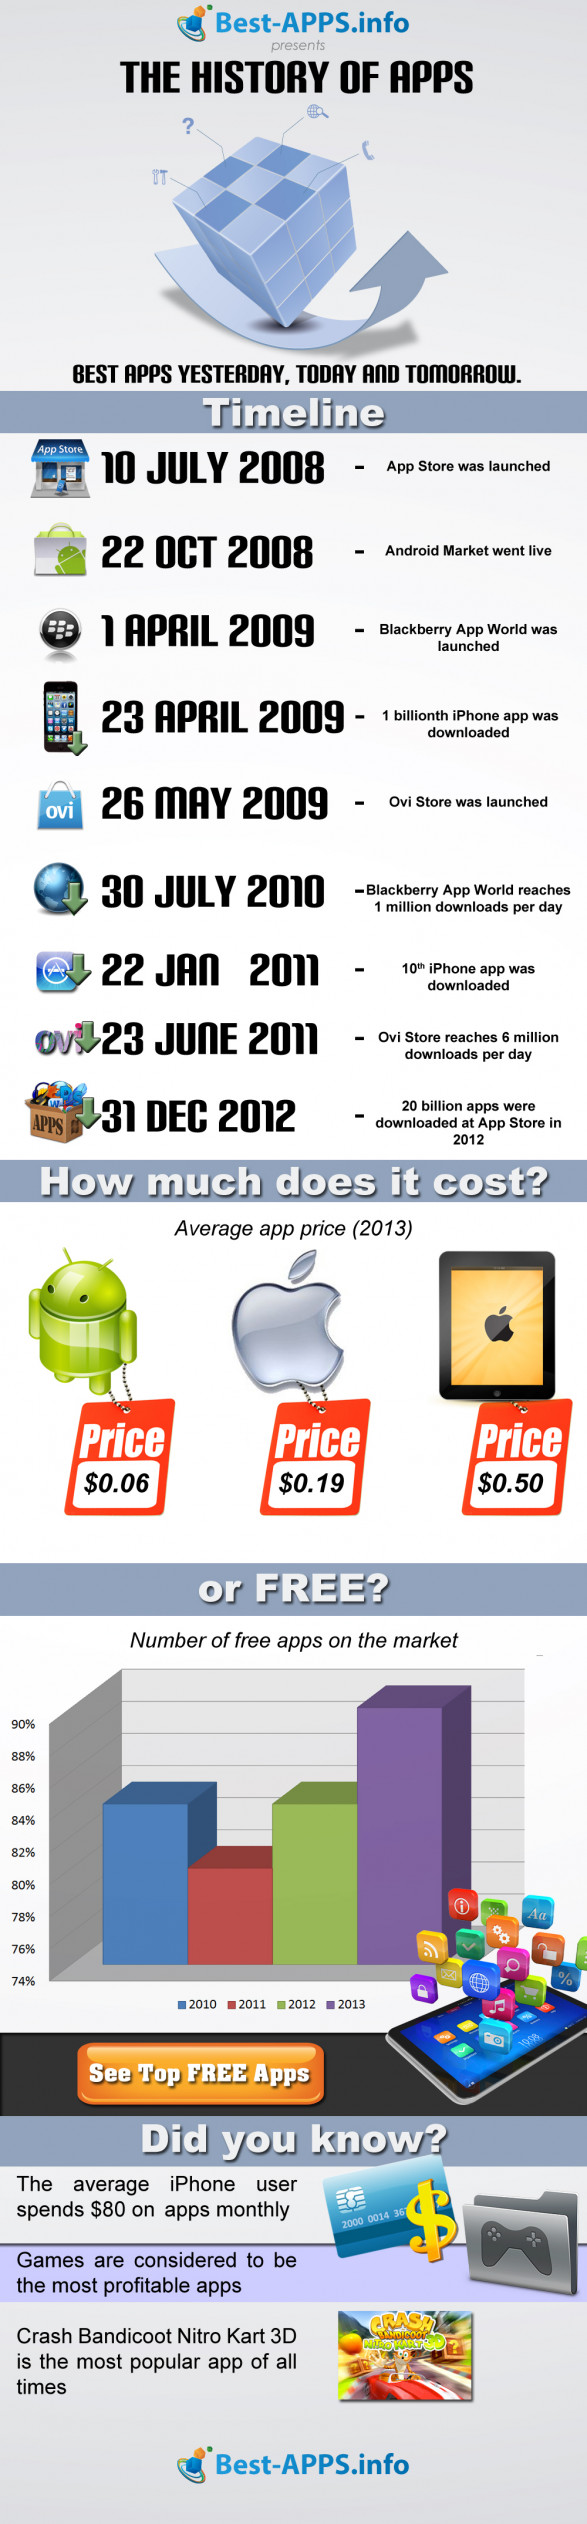 The History of Apps